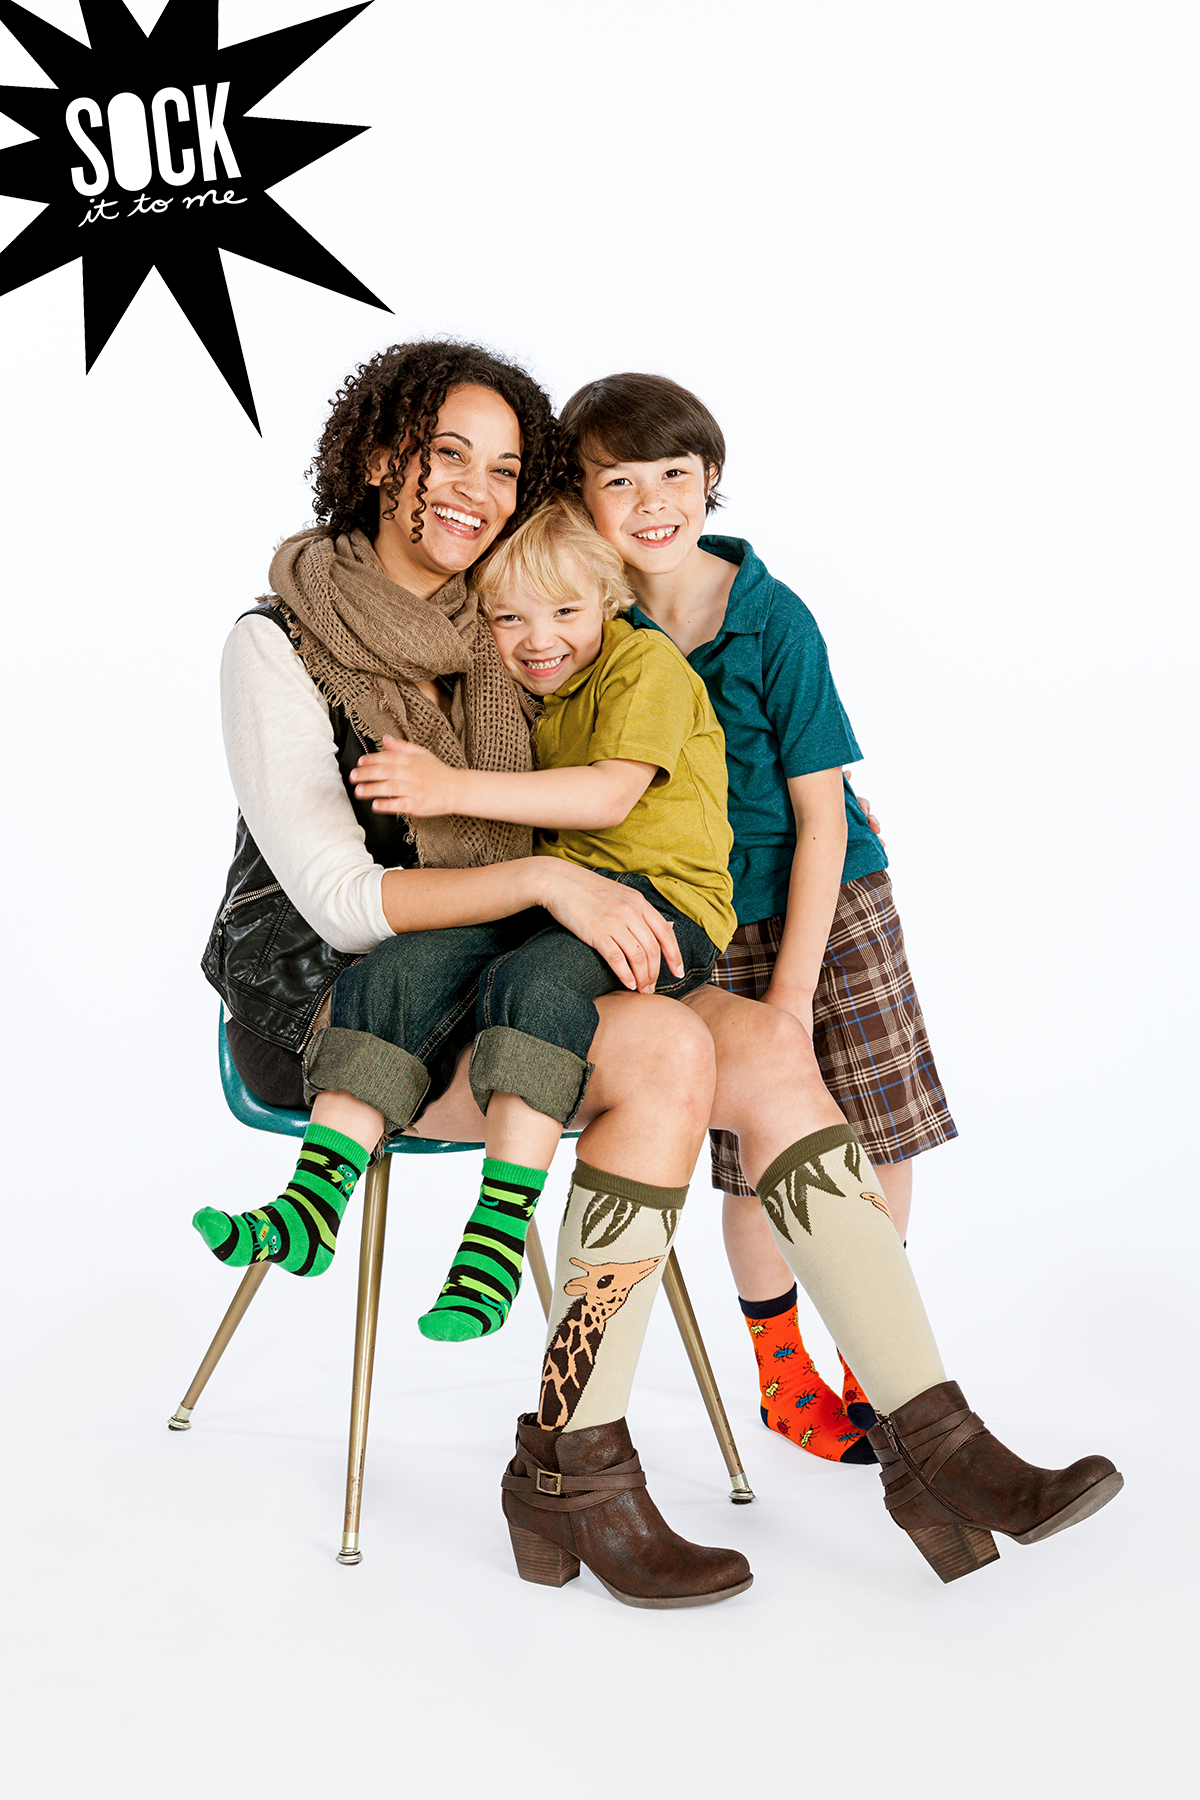 Funkiness knows no age! | New Fall 2014 Designs: Sock It To Me